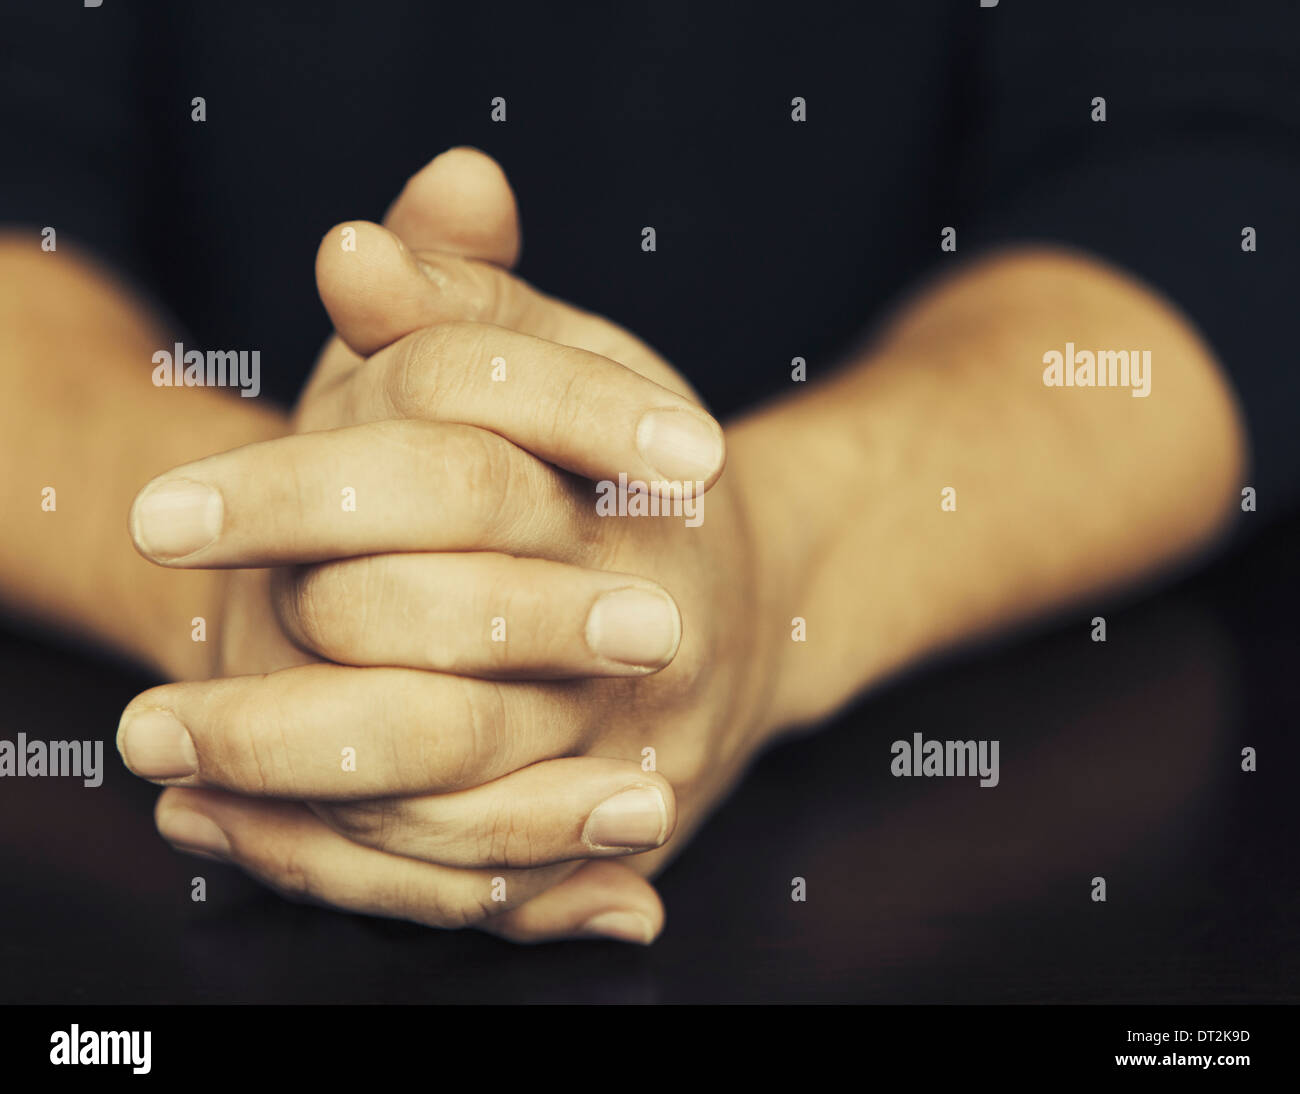 The clasped hands of a man wearing dark coloured clothes Stock Photo